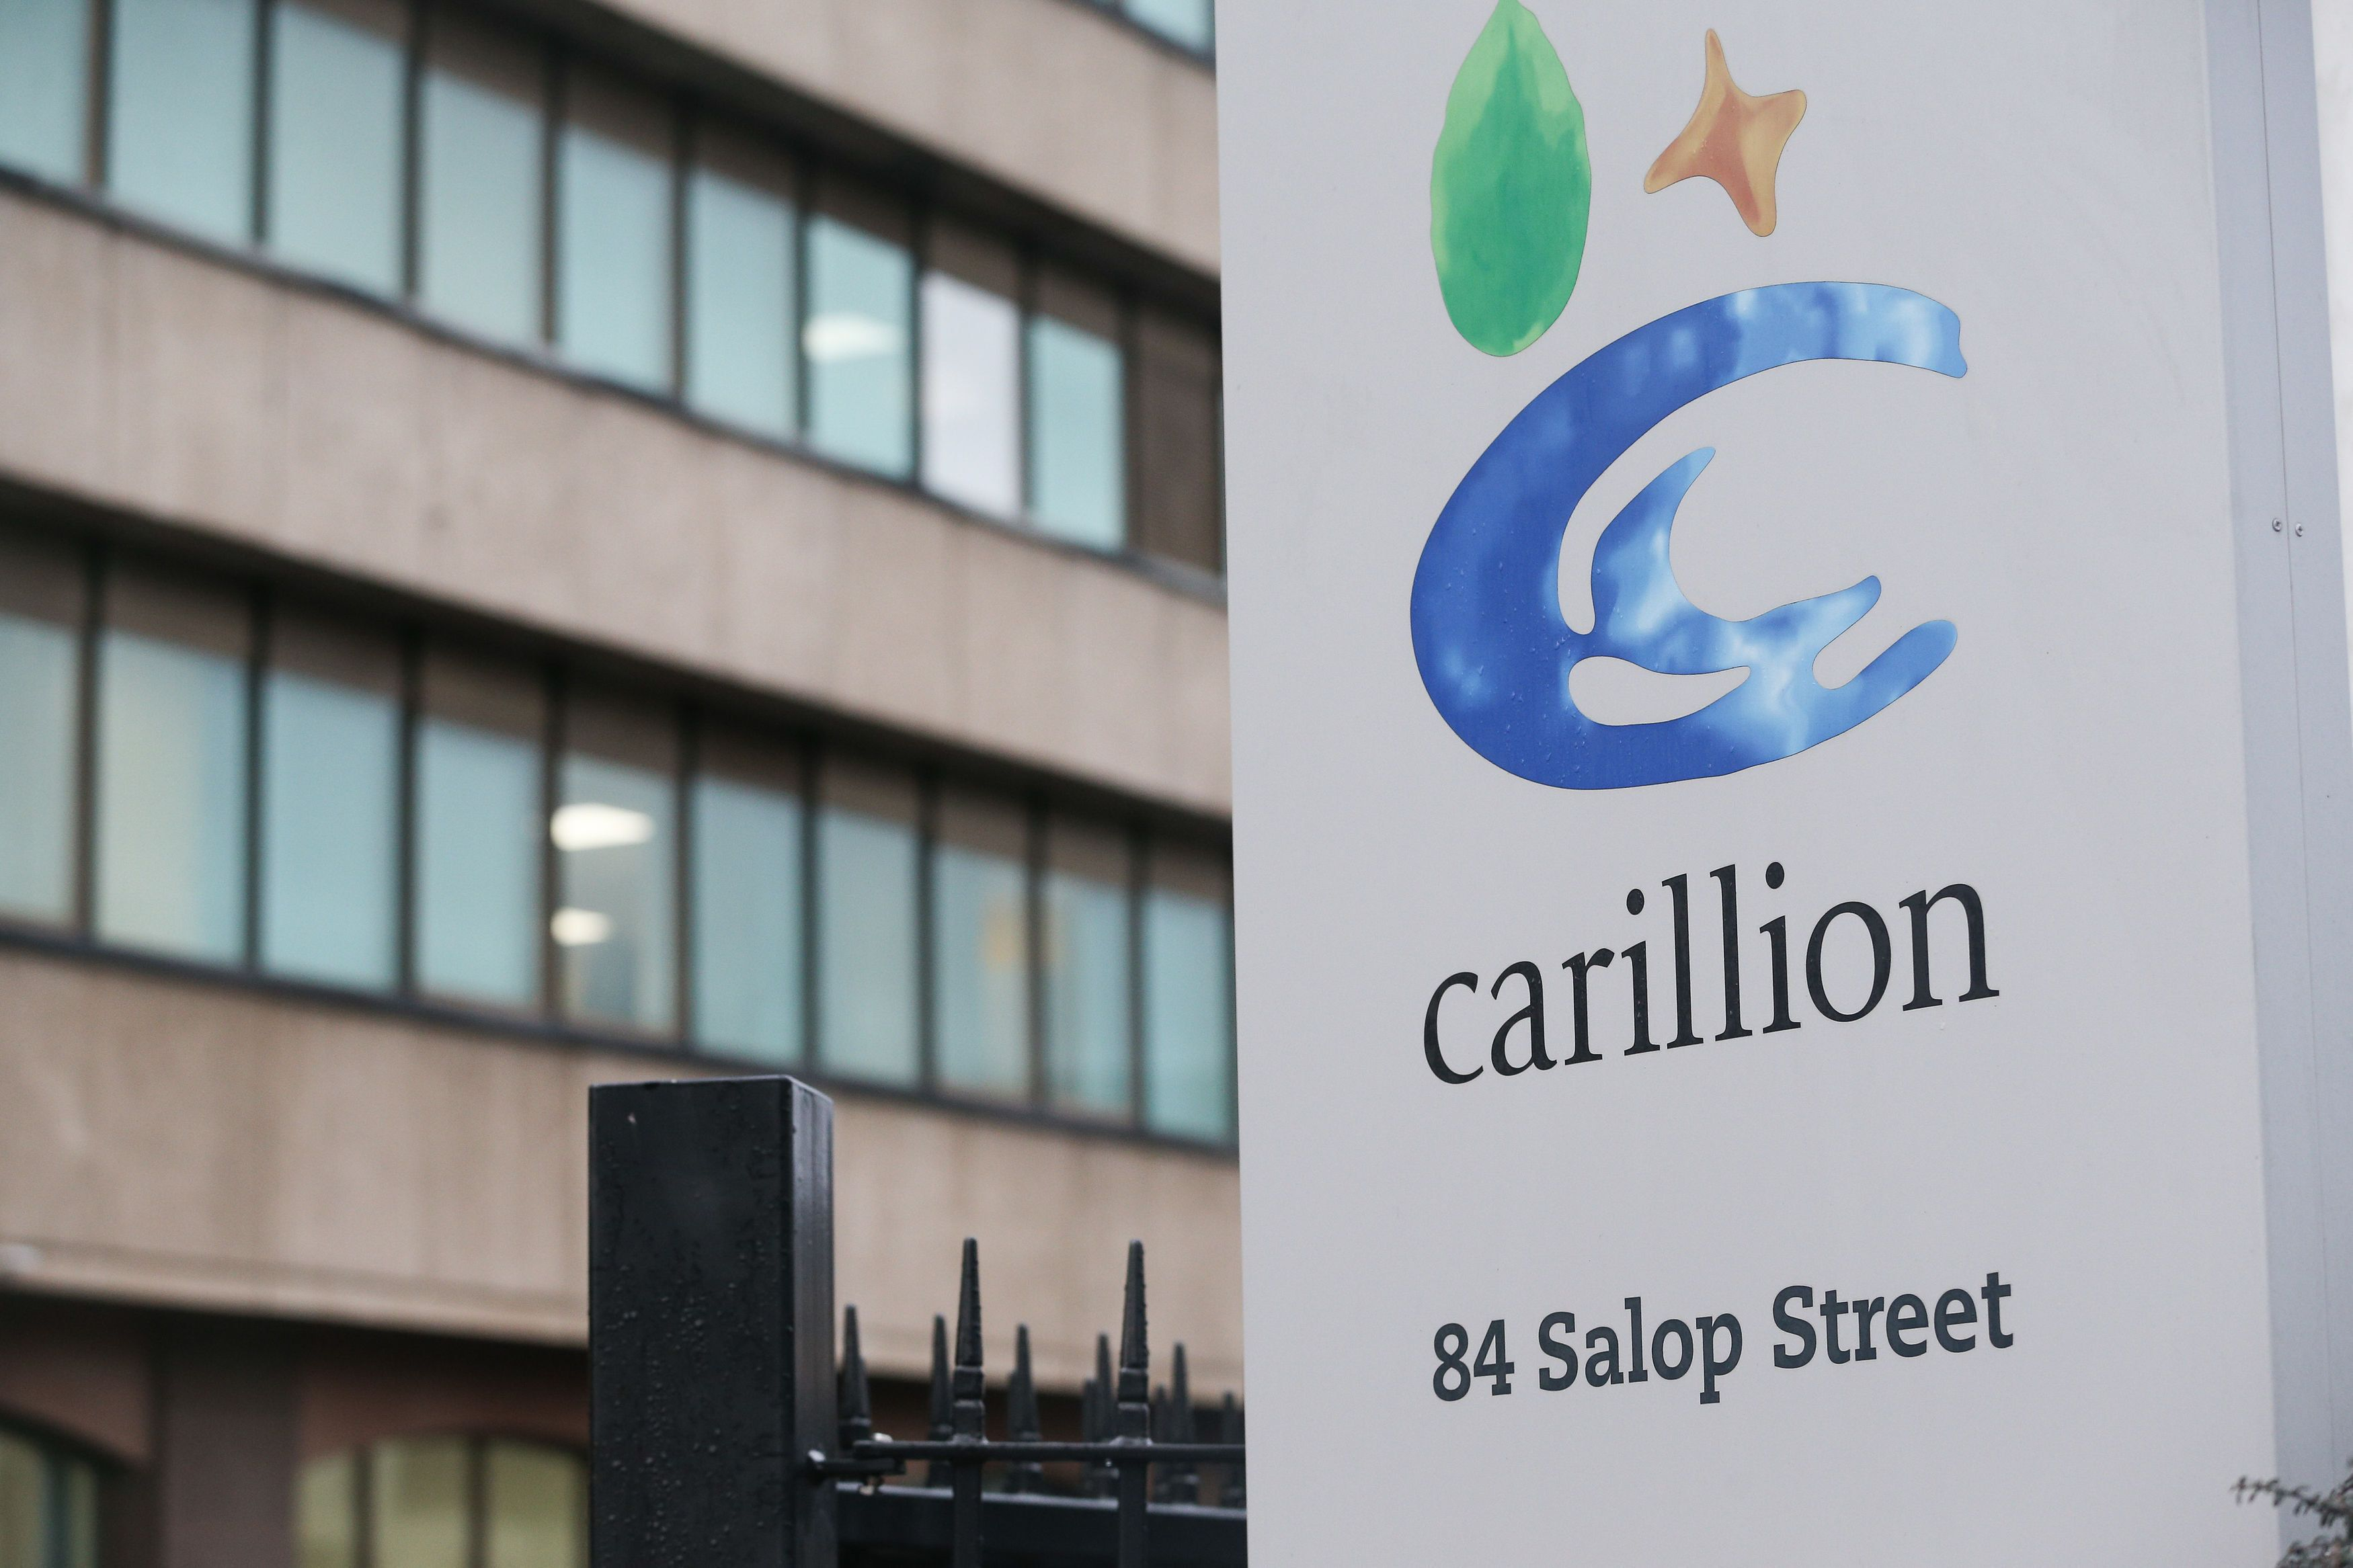 Carillion: Public Confidence In Outsourcing 'Seriously Damaged', Say